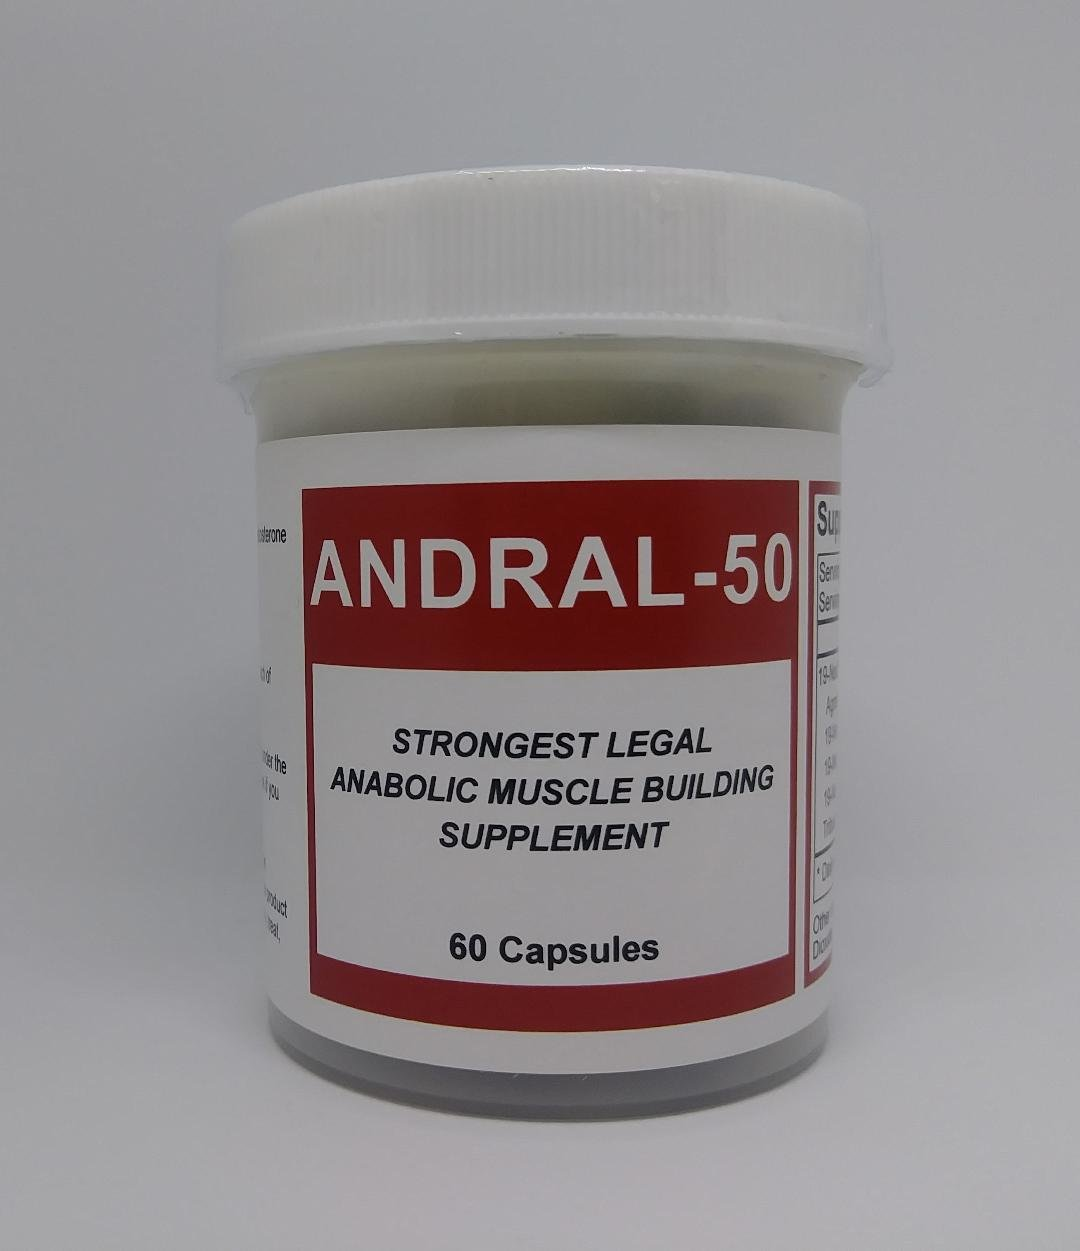 ANDRAL-50